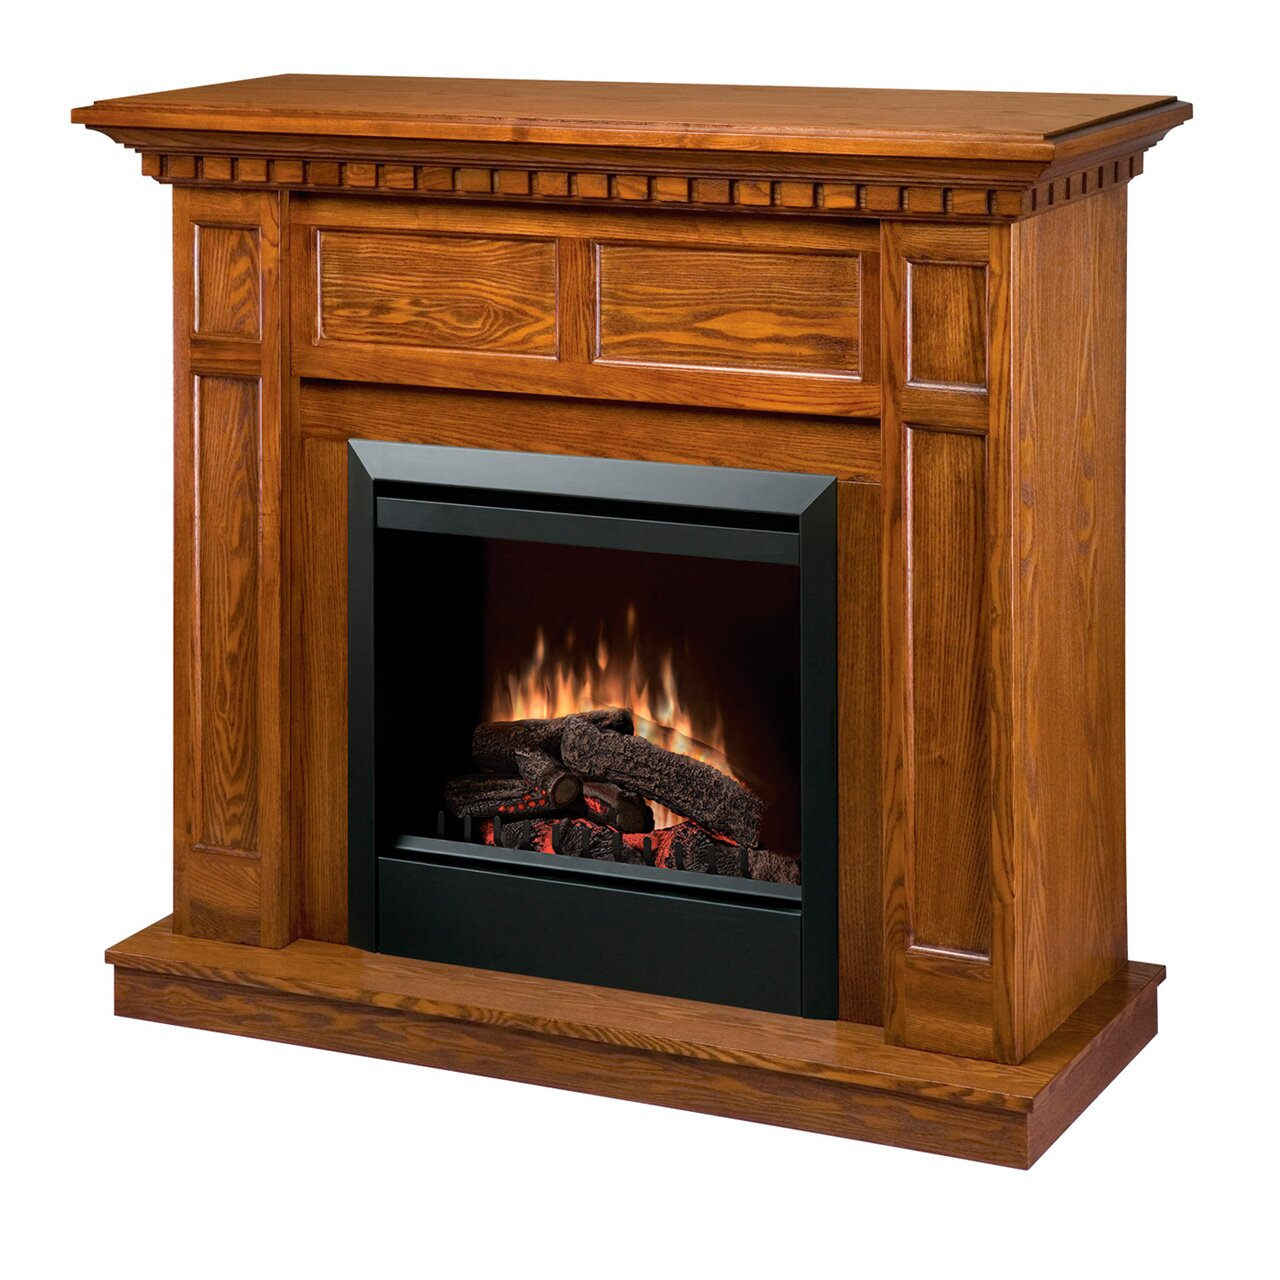 Dimplex Electraflame Caprice Electric Fireplace Reviews Wayfair